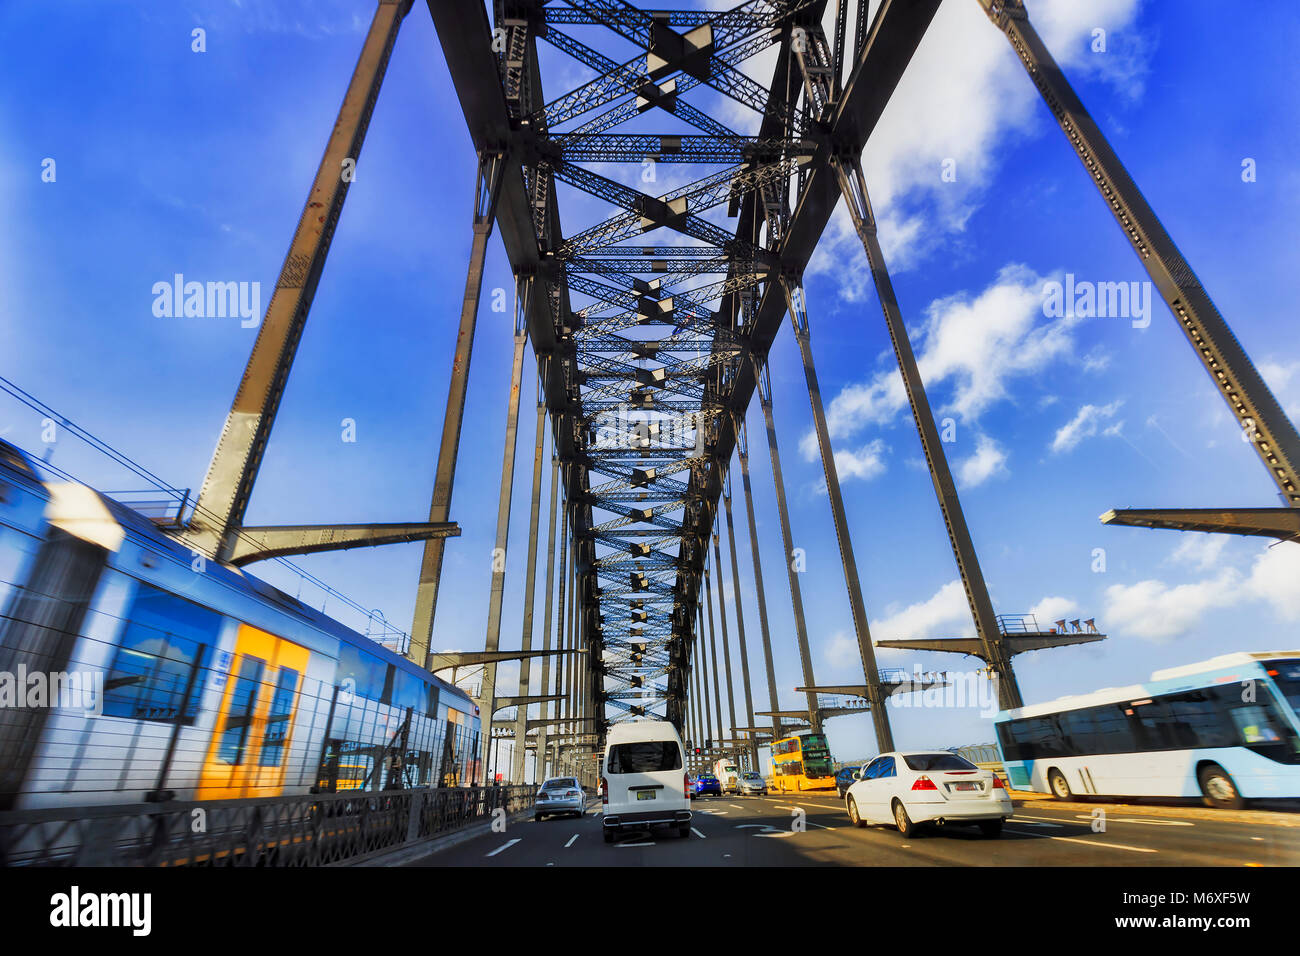 Public transportation and private passenger cars during intense traffic rush hour driving over Sydney harbour bridge - Stock Image